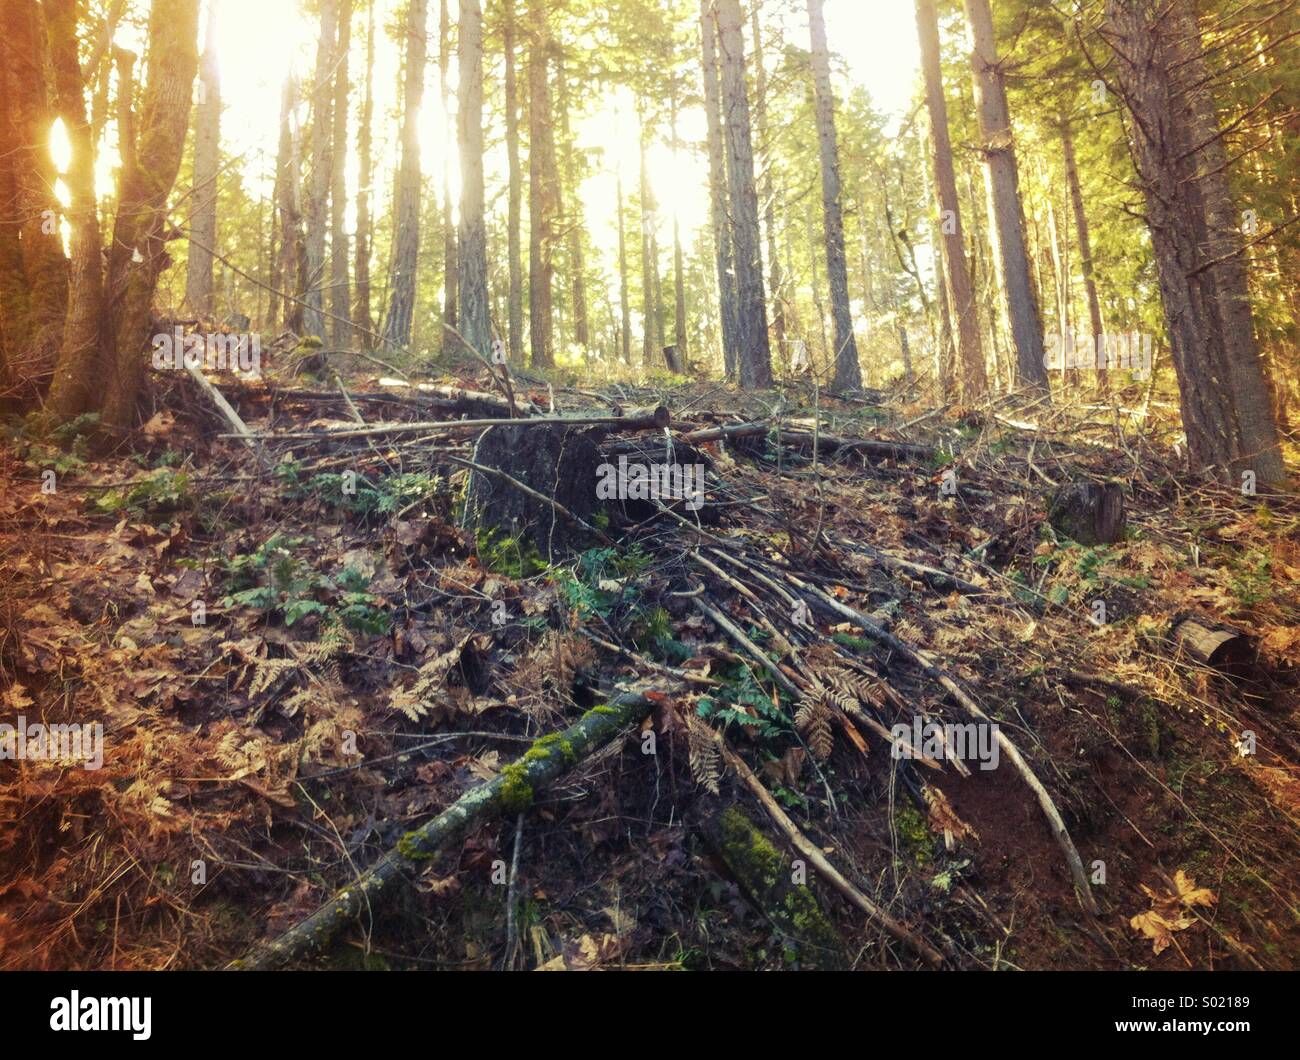 Clearing in forest - Stock Image